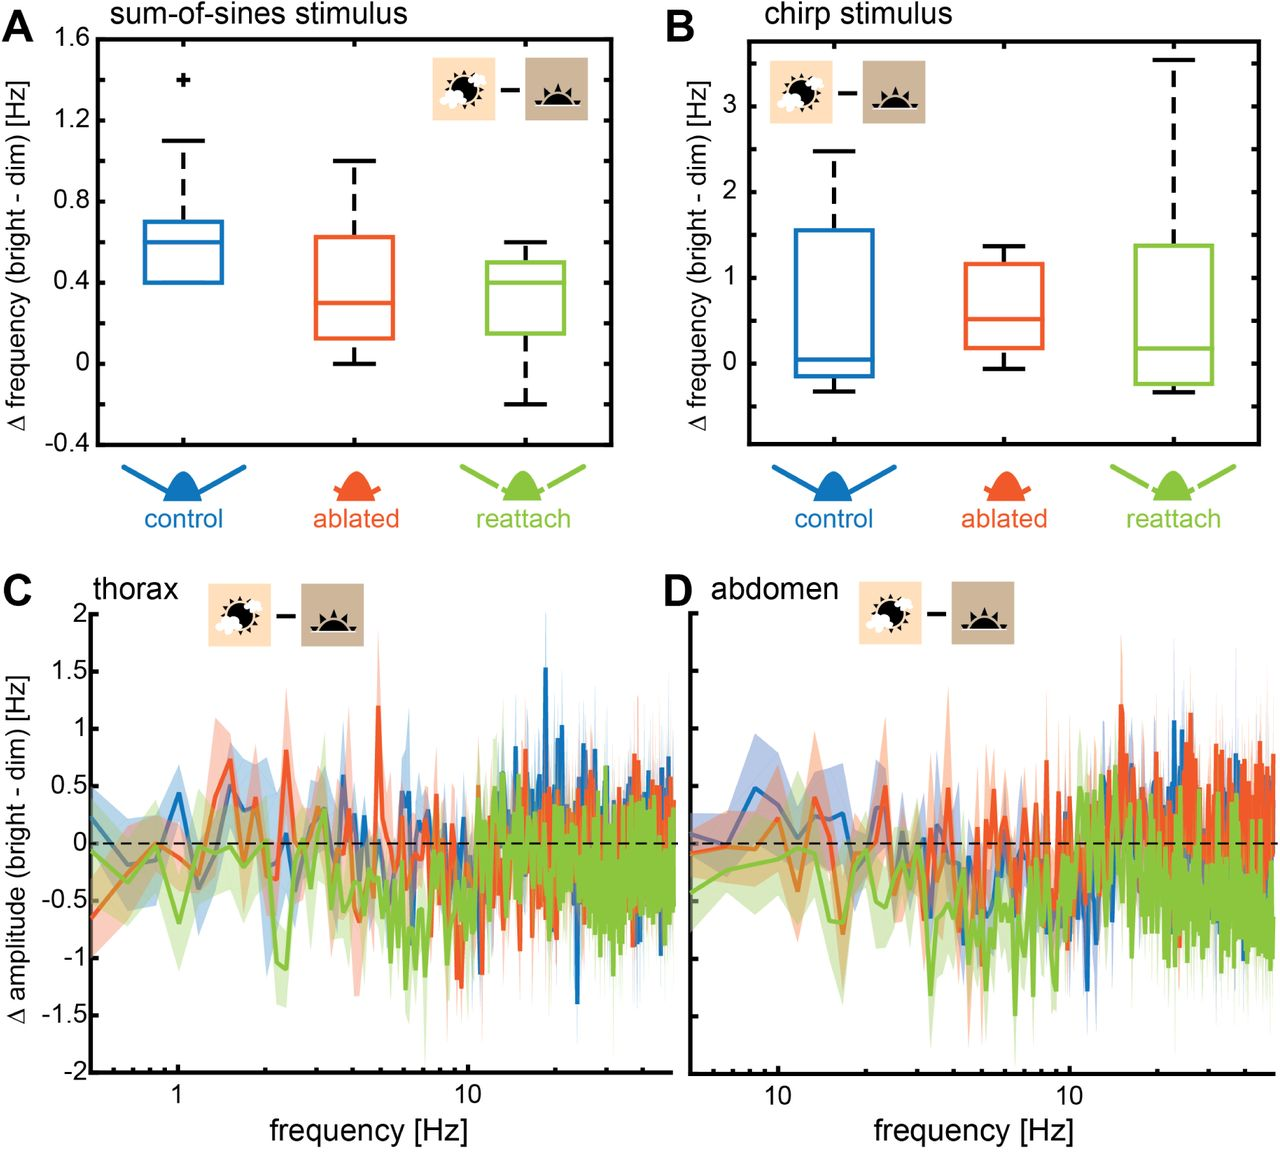 The roles of vision and antennal mechanoreception in